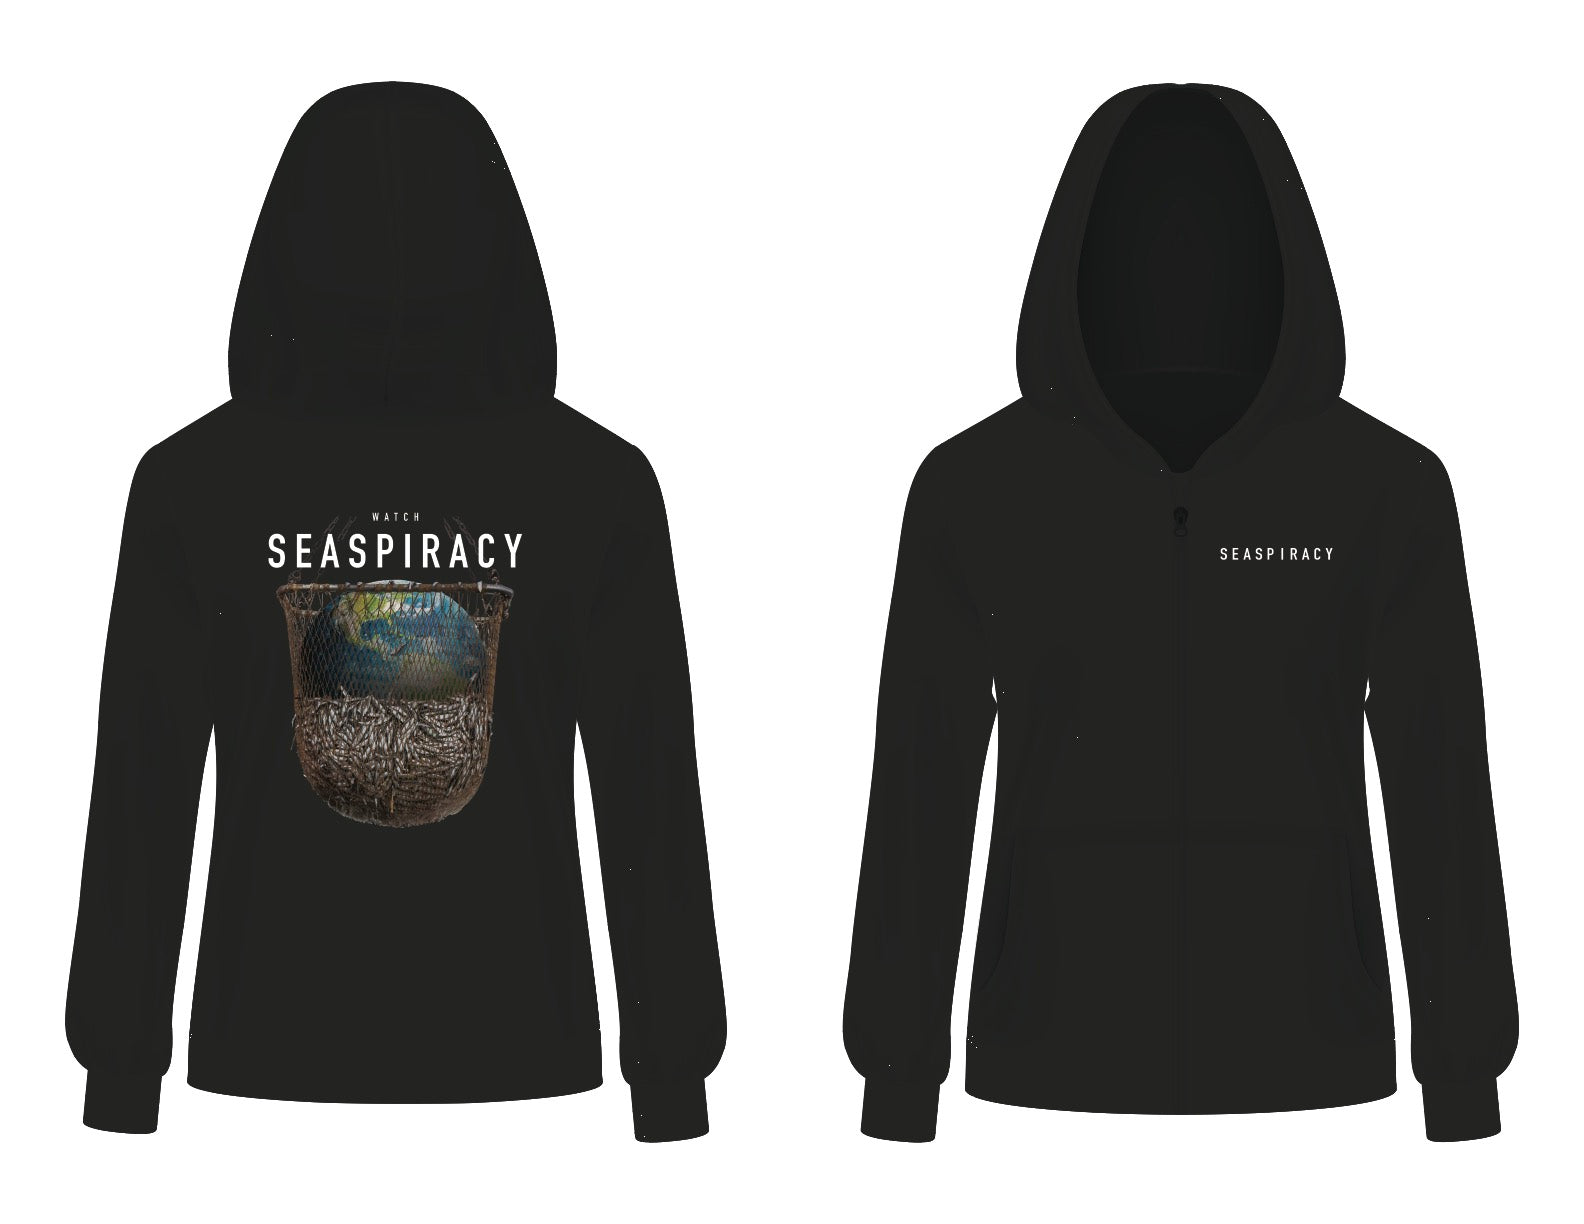 Seaspiracy Earth Graphic Unisex Pullover Hoodie